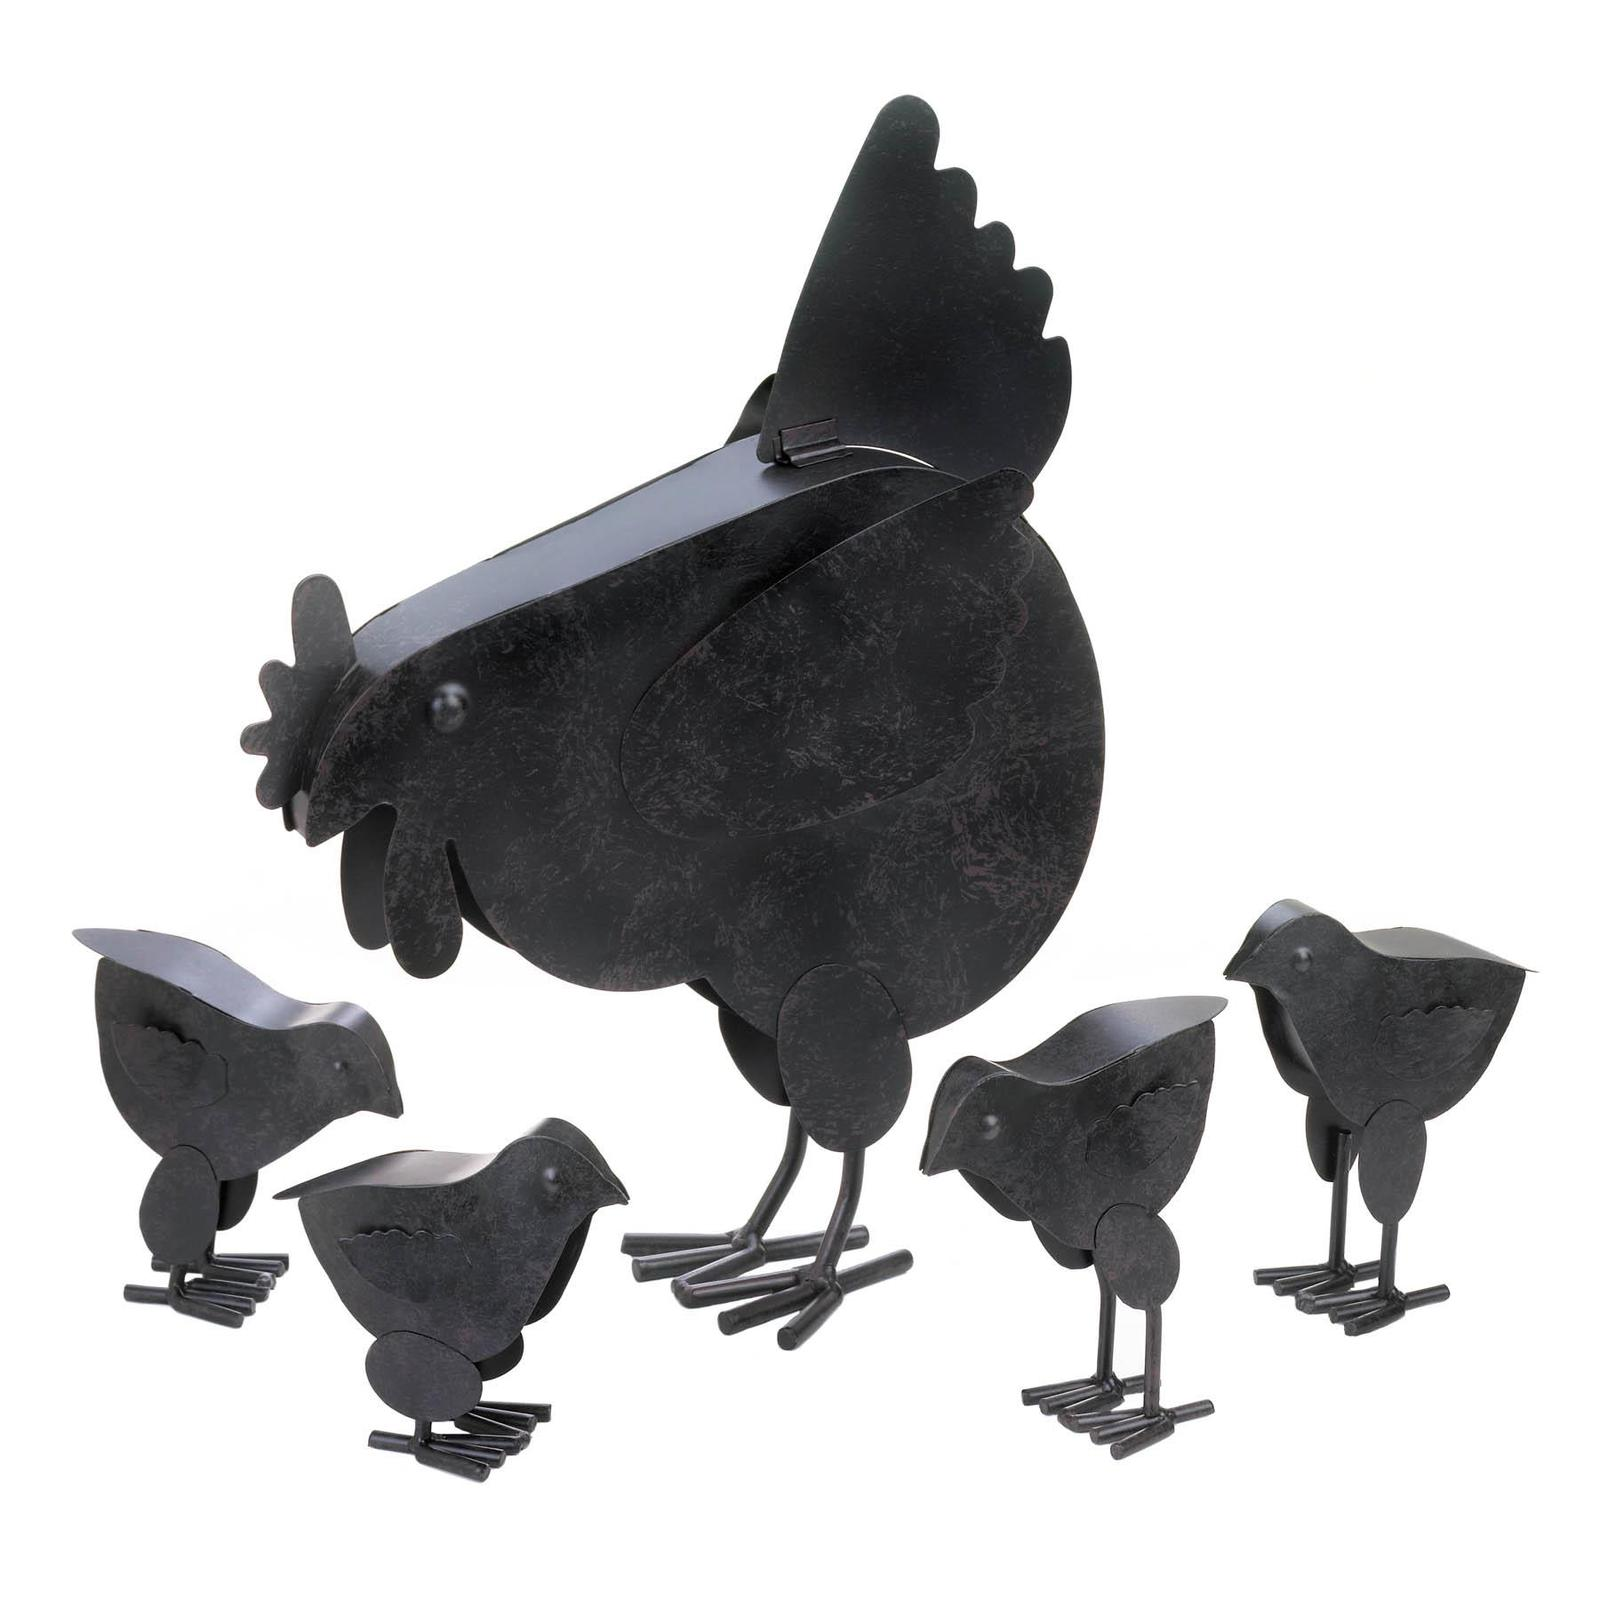 Rustic Metal Hens with Chicks Family of 5 Sculpture Garden Decor